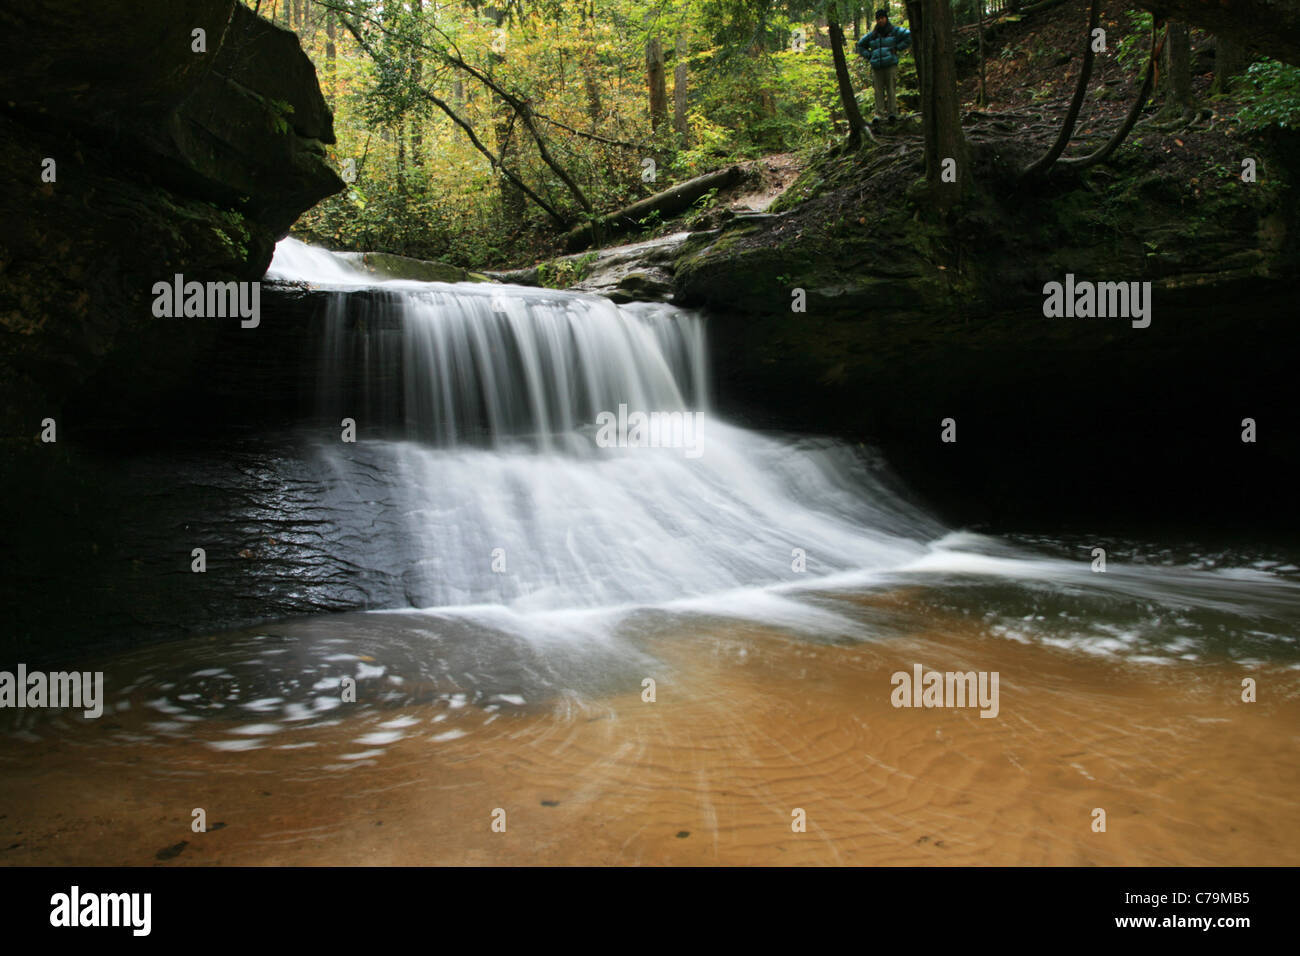 long exposure of Creation Falls in the Red River Gorge, Kentucky - Stock Image